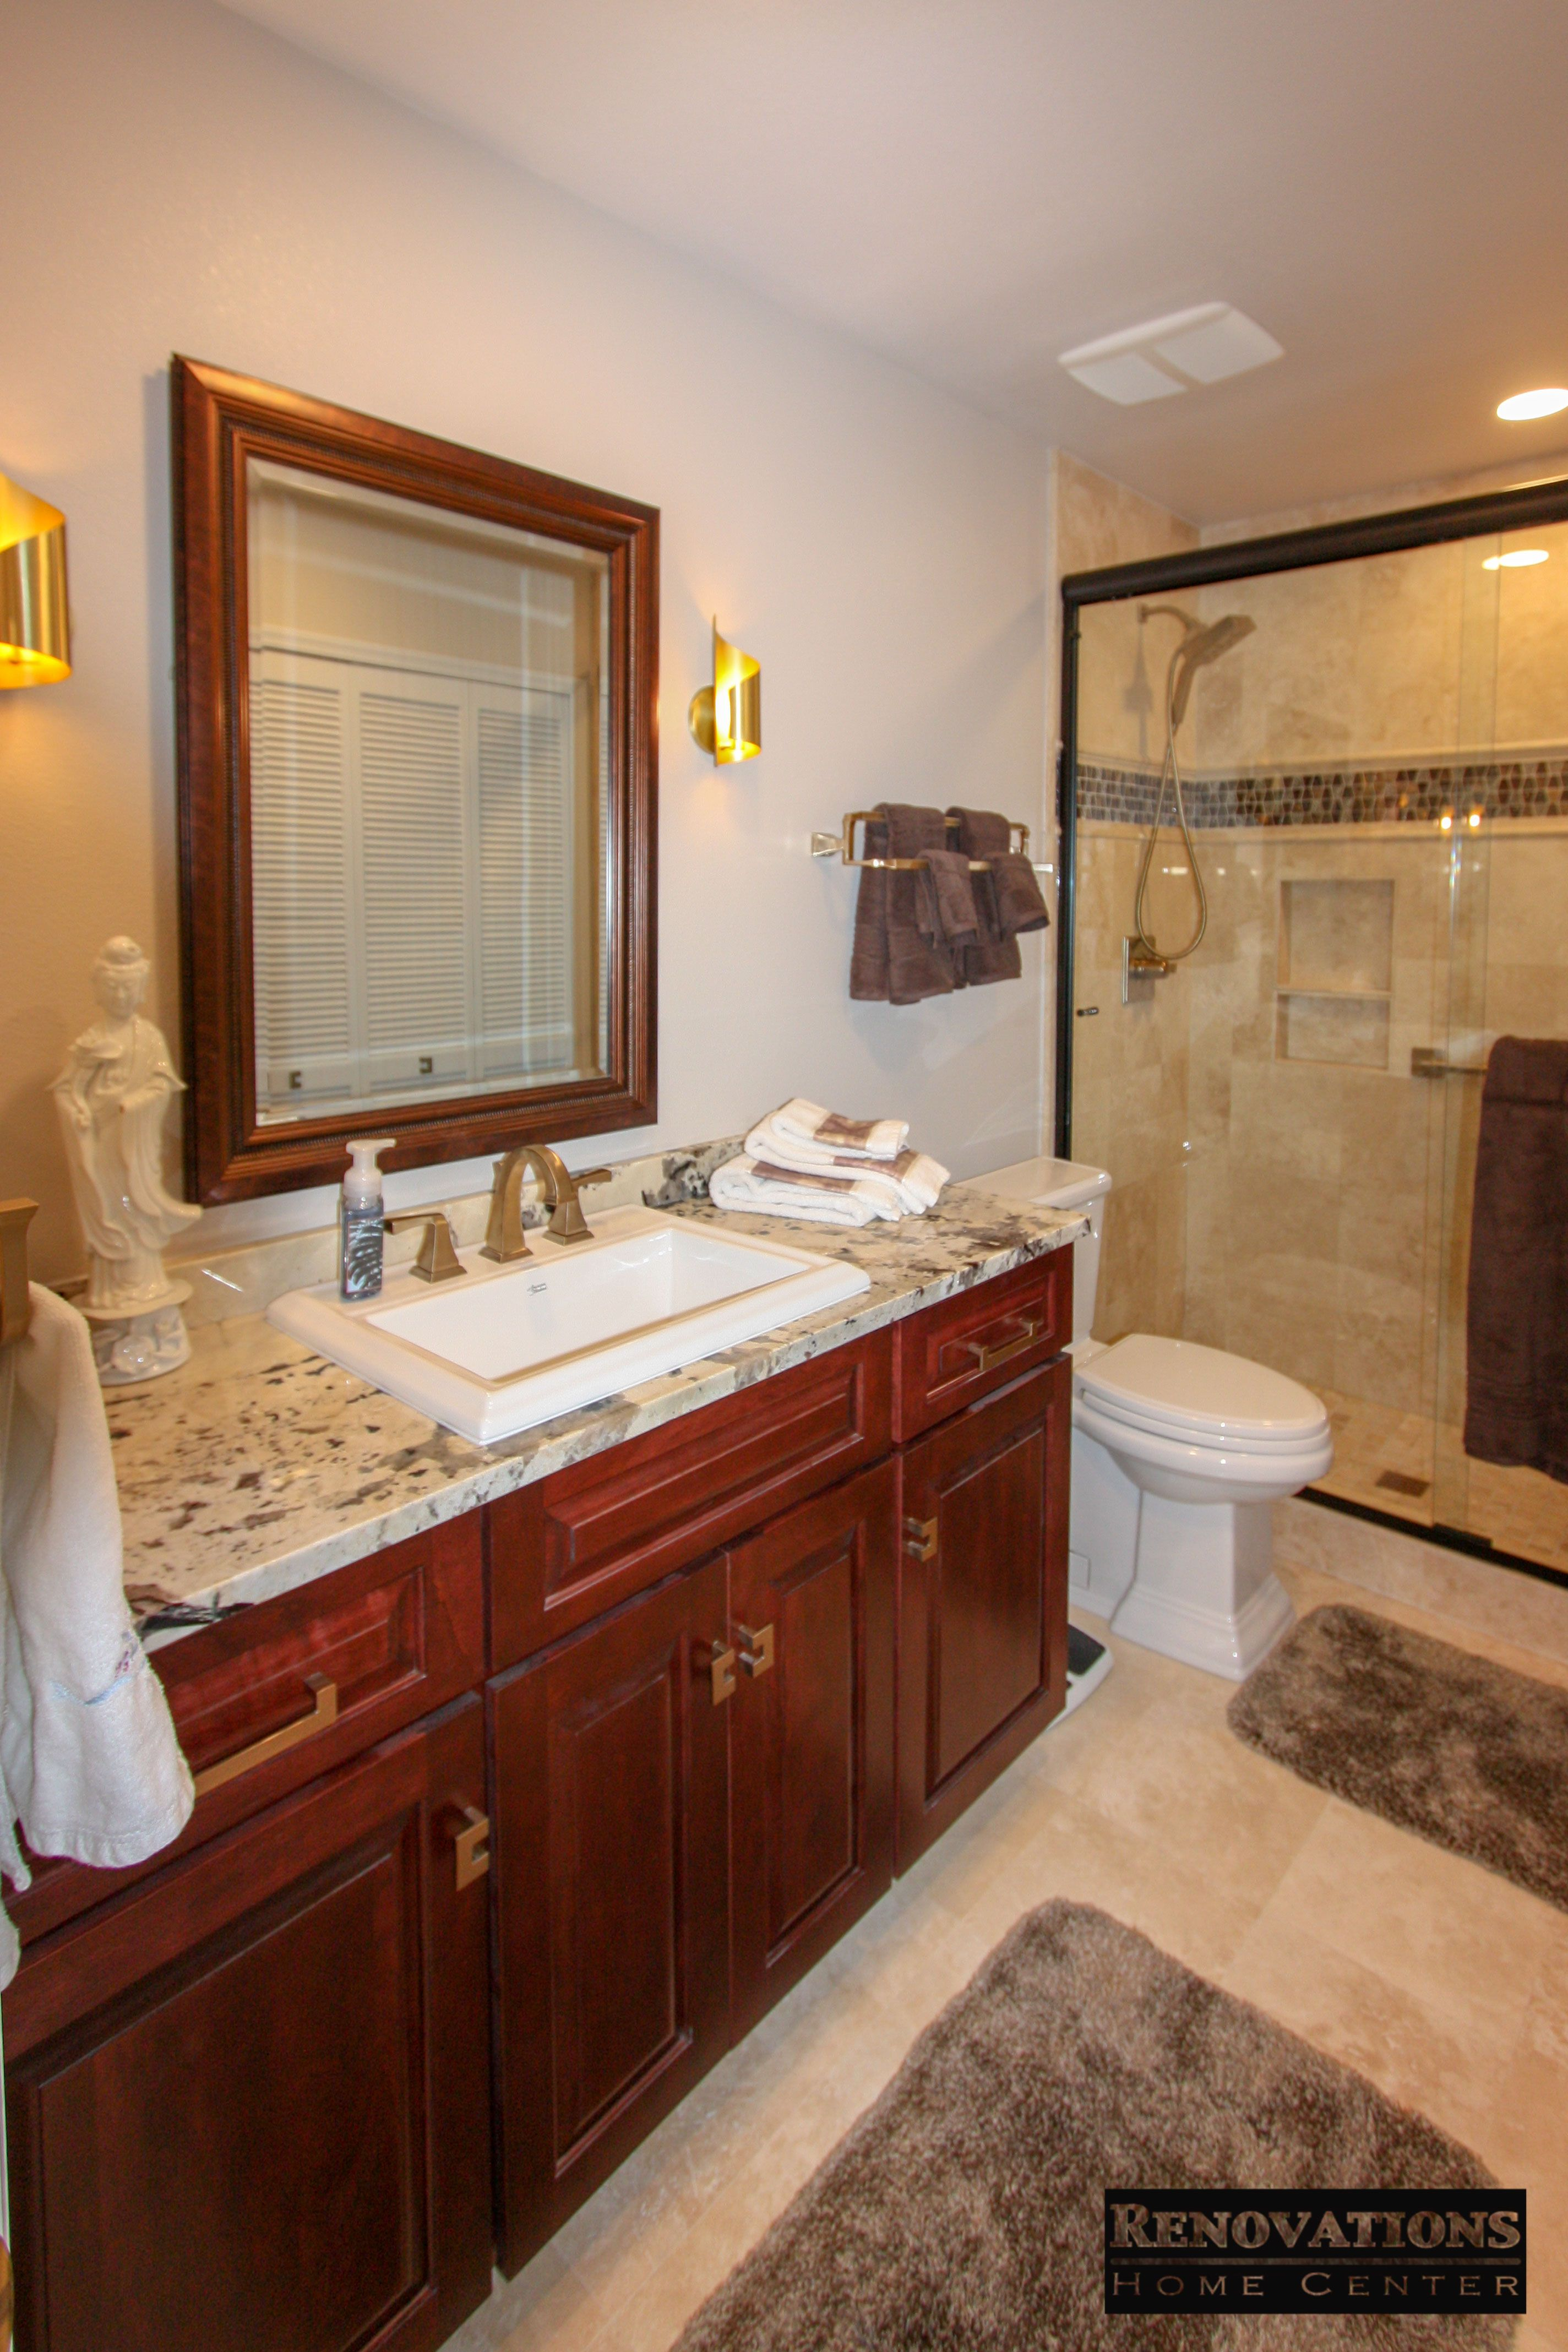 Full Master Bathroom Renovation For Our Client In Palm Harbor We Replaced All Cabinets Wi Kitchen And Bath Remodeling Kitchen Bathroom Remodel Home Remodeling